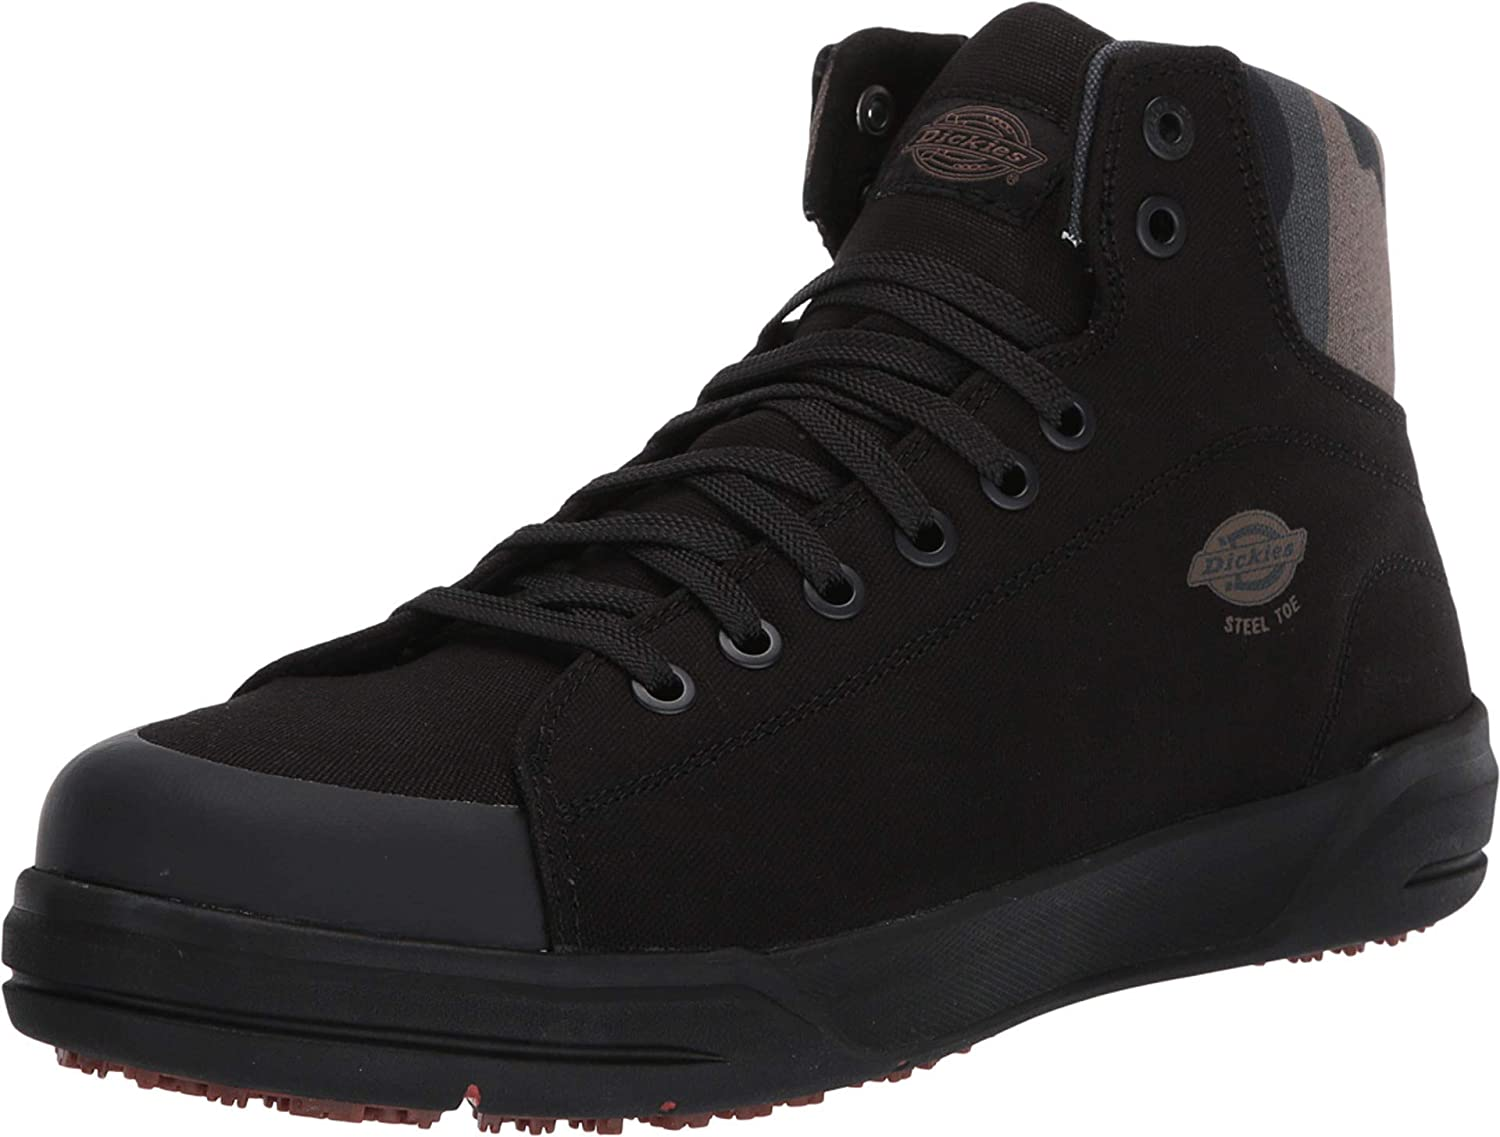 Dickies Men's Supa Dupa Mid St ASTM Sr Fire and Safety Shoe: Shoes